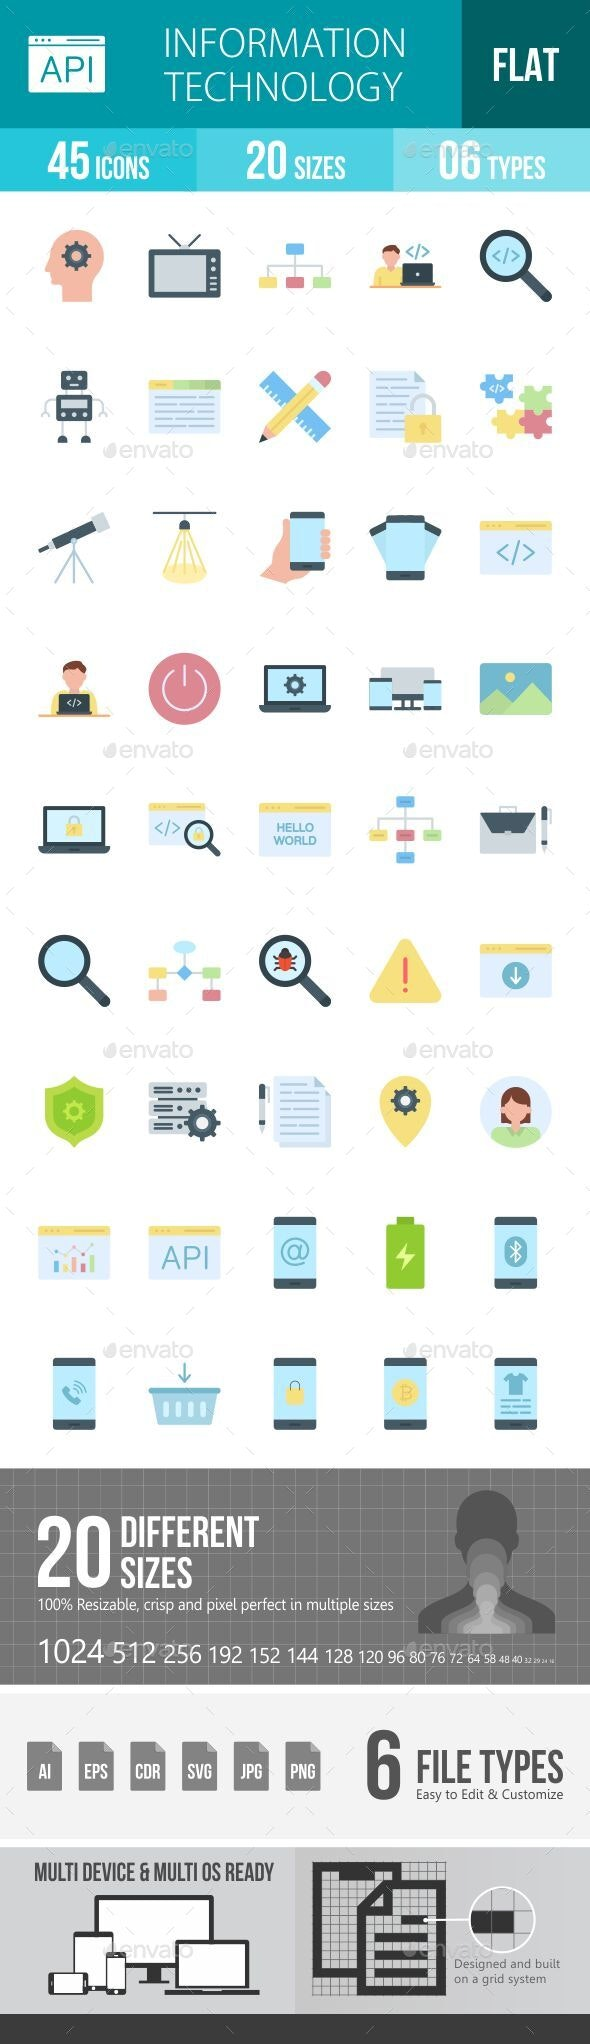 Information Technology Flat Icons - Icons